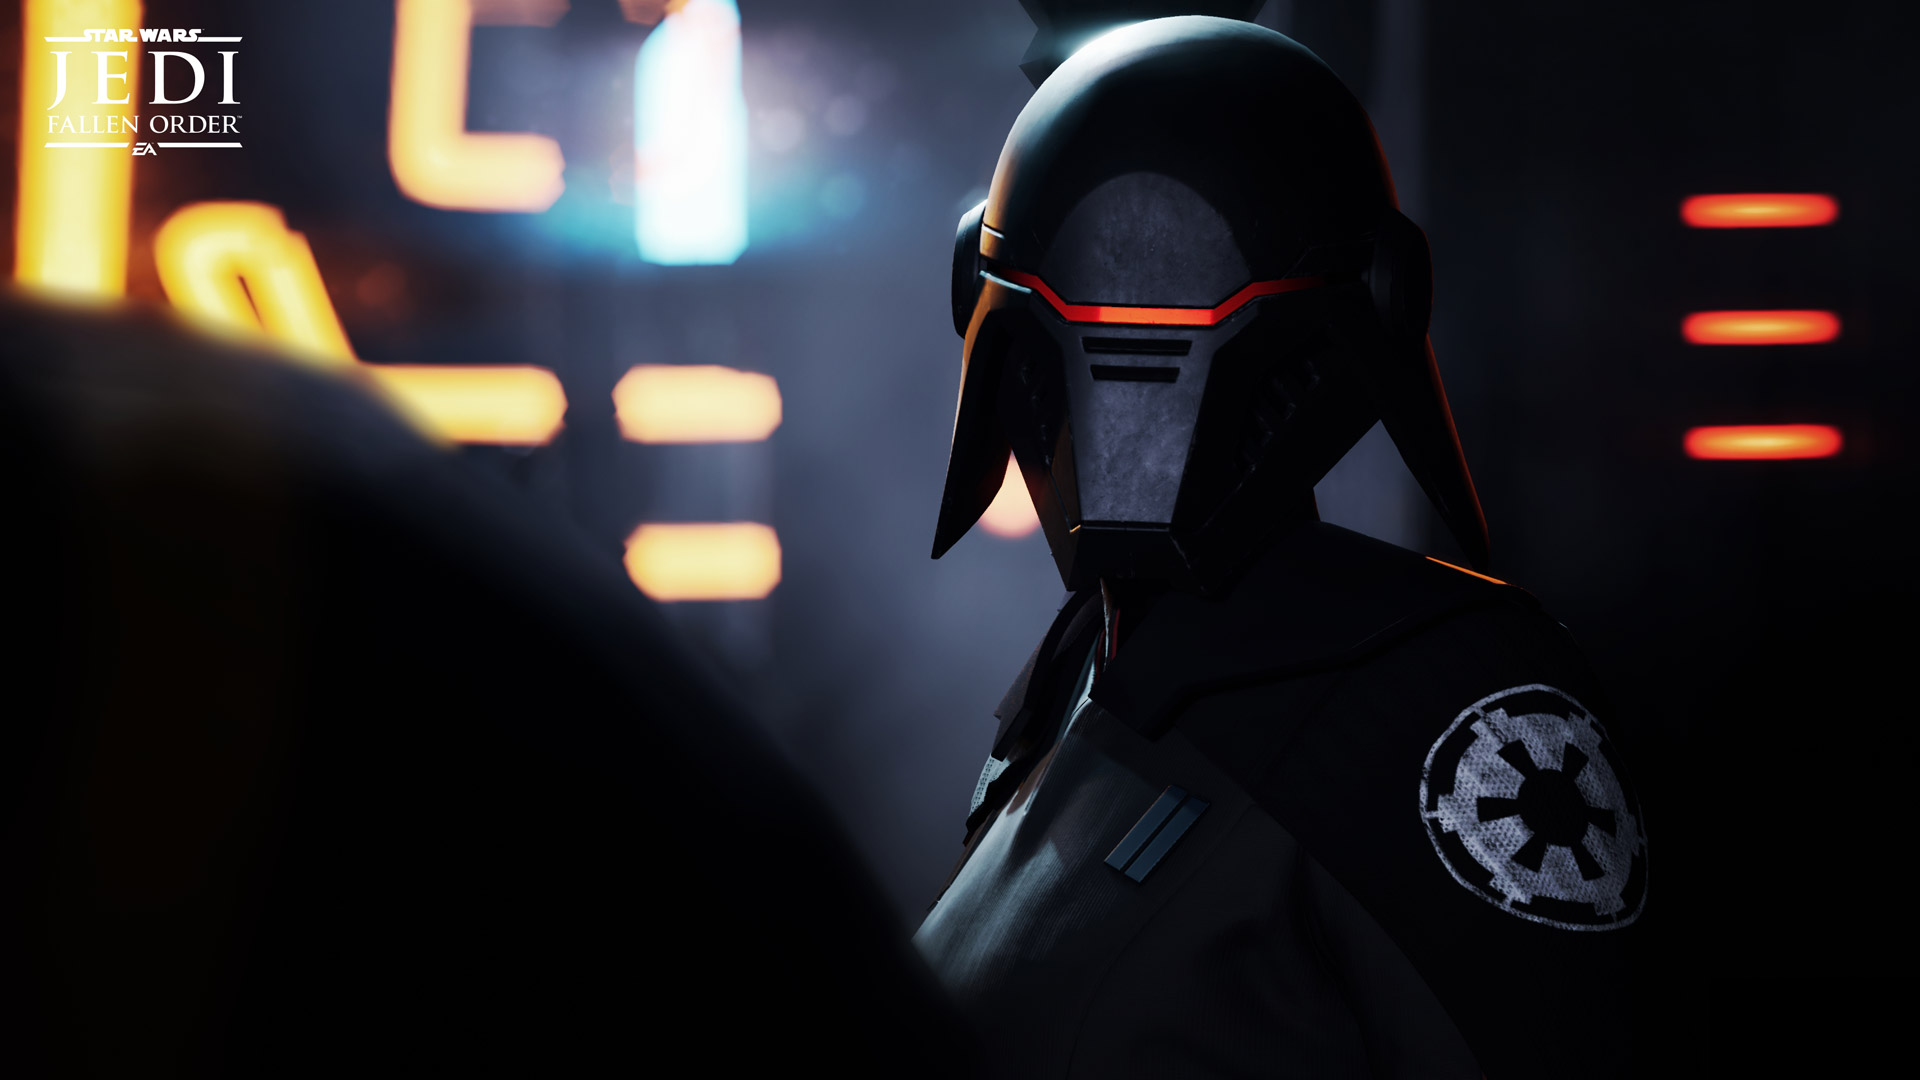 Star Wars Jedi: Fallen Order Wallpaper in 1920x1080